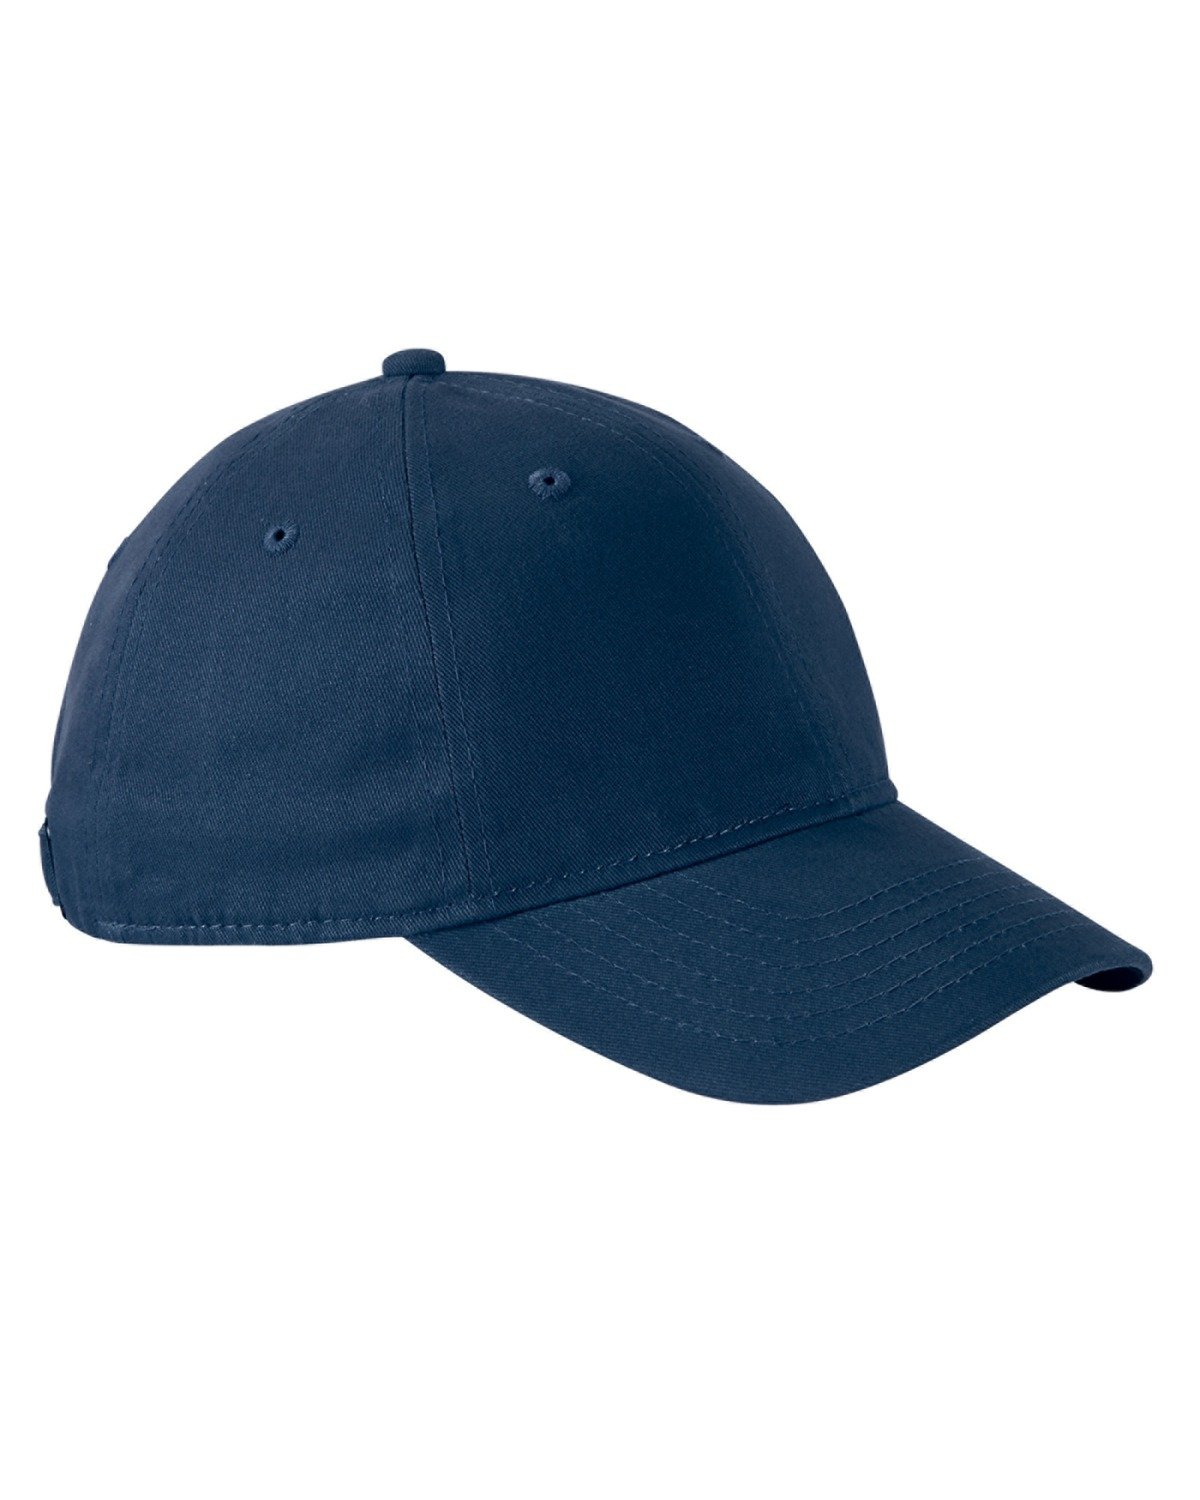 b54cff84e2b A612 adidas Golf Performance Front-Hit Relaxed Cap. Touch to zoom. Color  Shown  navy  white. Front Back Side